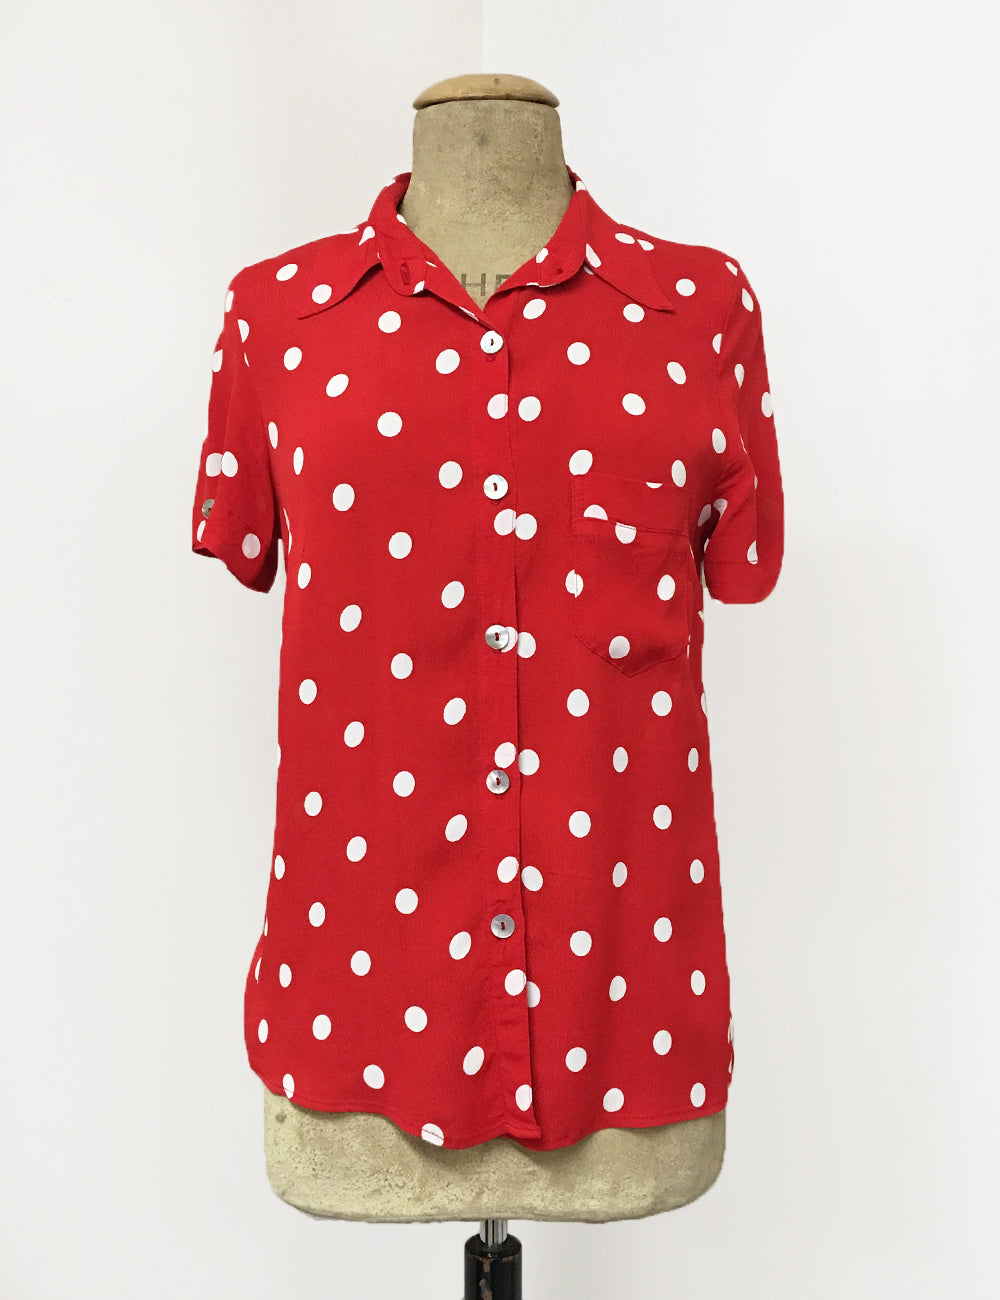 Red & White Big Polka Dot Button Up Short Sleeve Camp Shirt